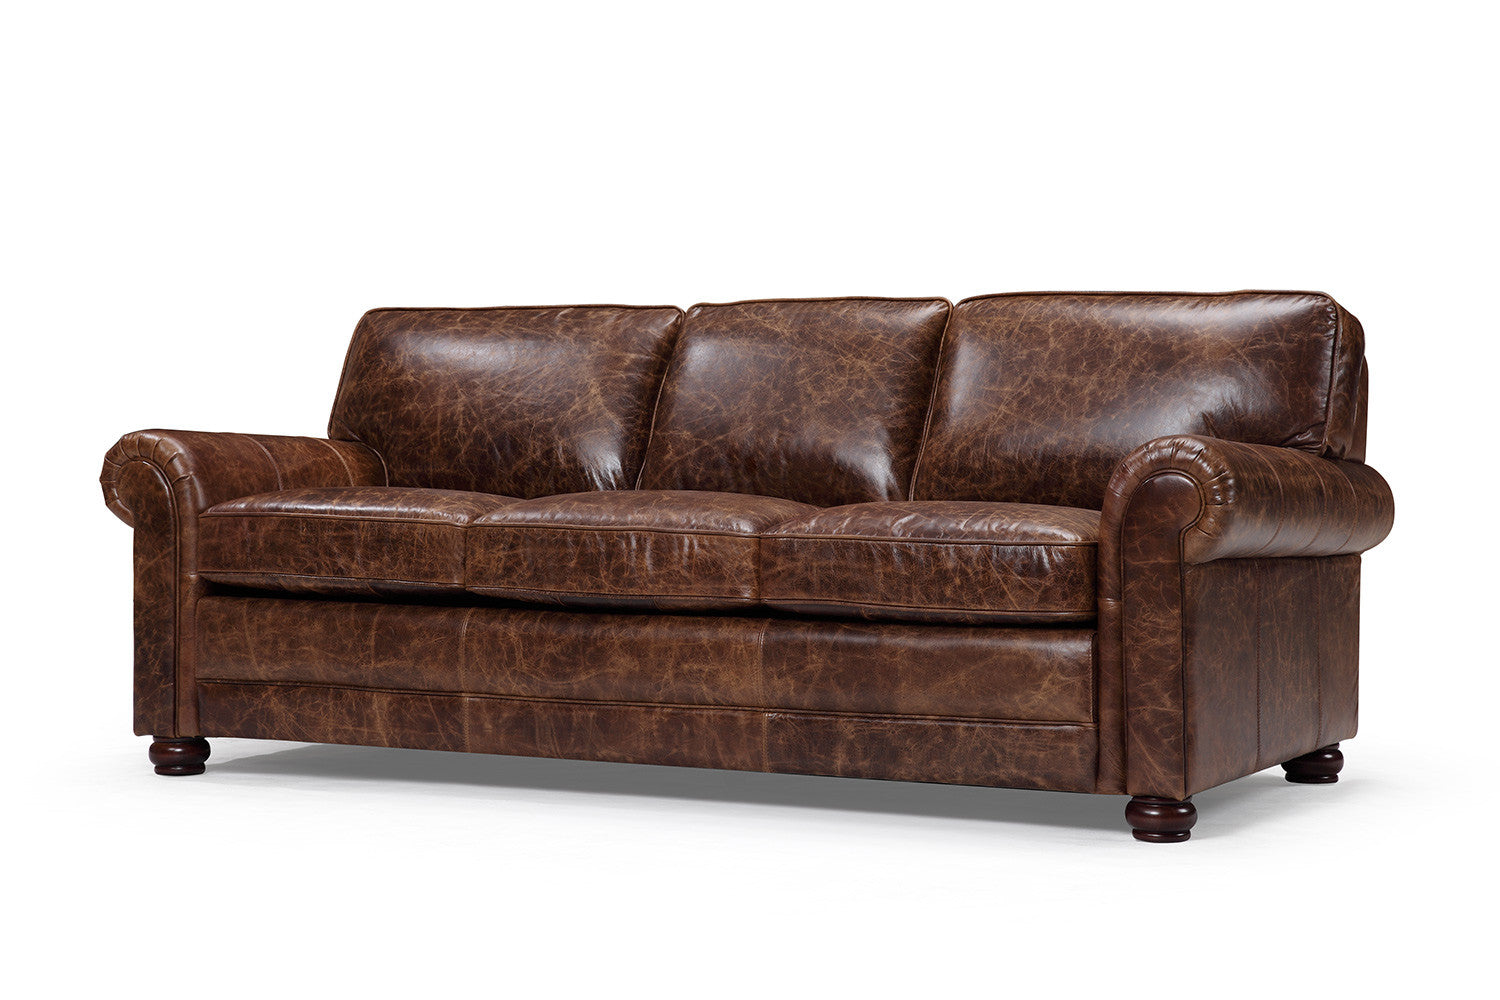 The montrose traditional leather sofa rose and moore for Traditional leather furniture